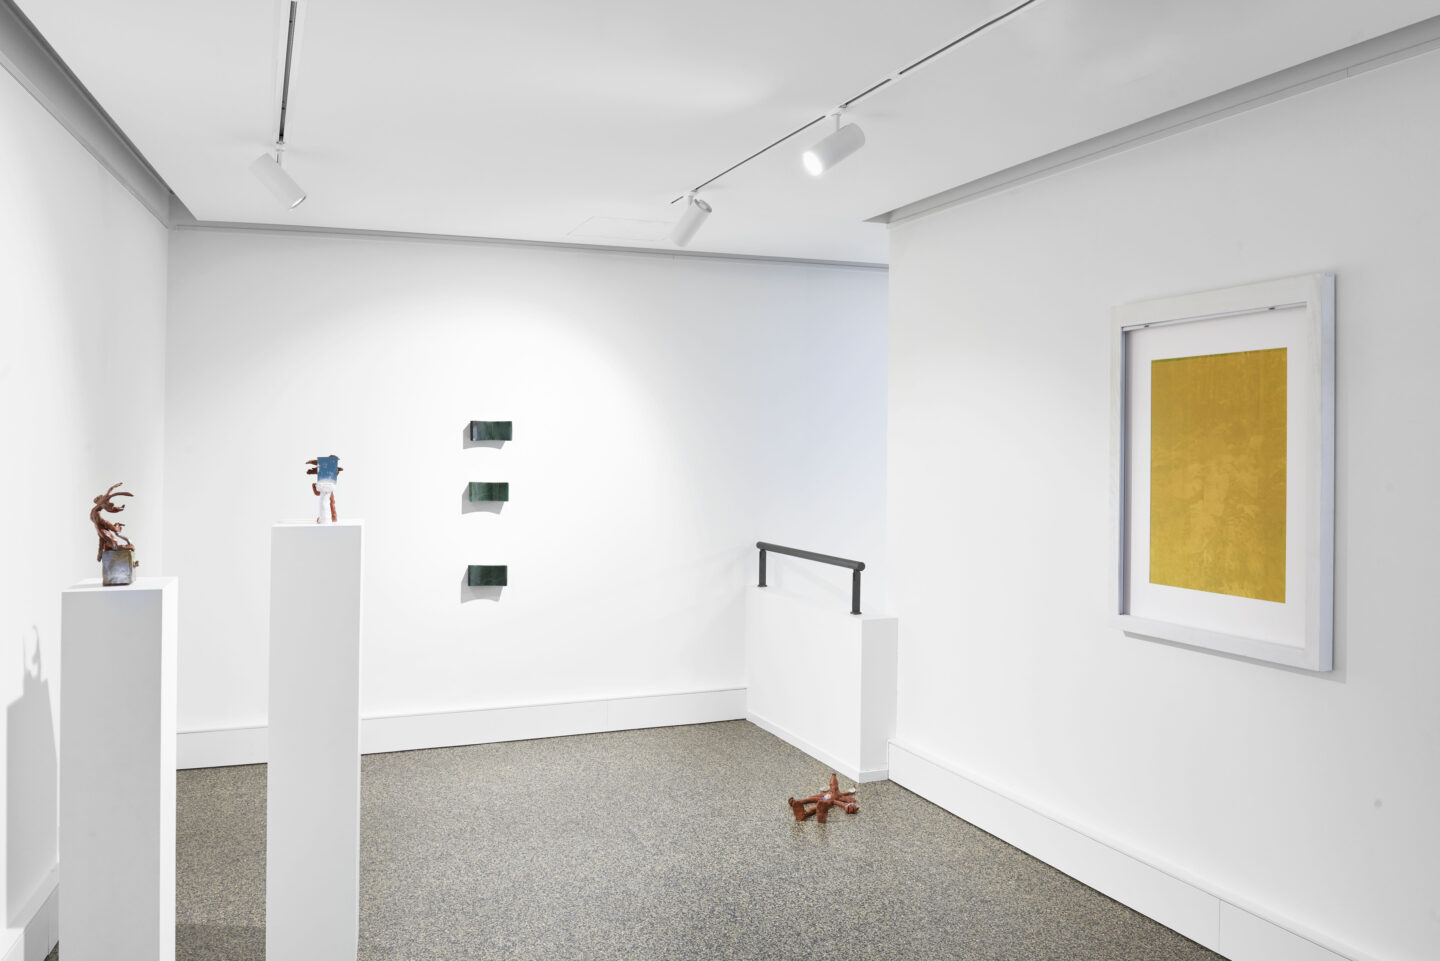 Exhibition View Groupshow «Supper Club» at Wilde, Basel, 2020 / Photo: Philipp Hänger / Courtesy: the artists and Wilde